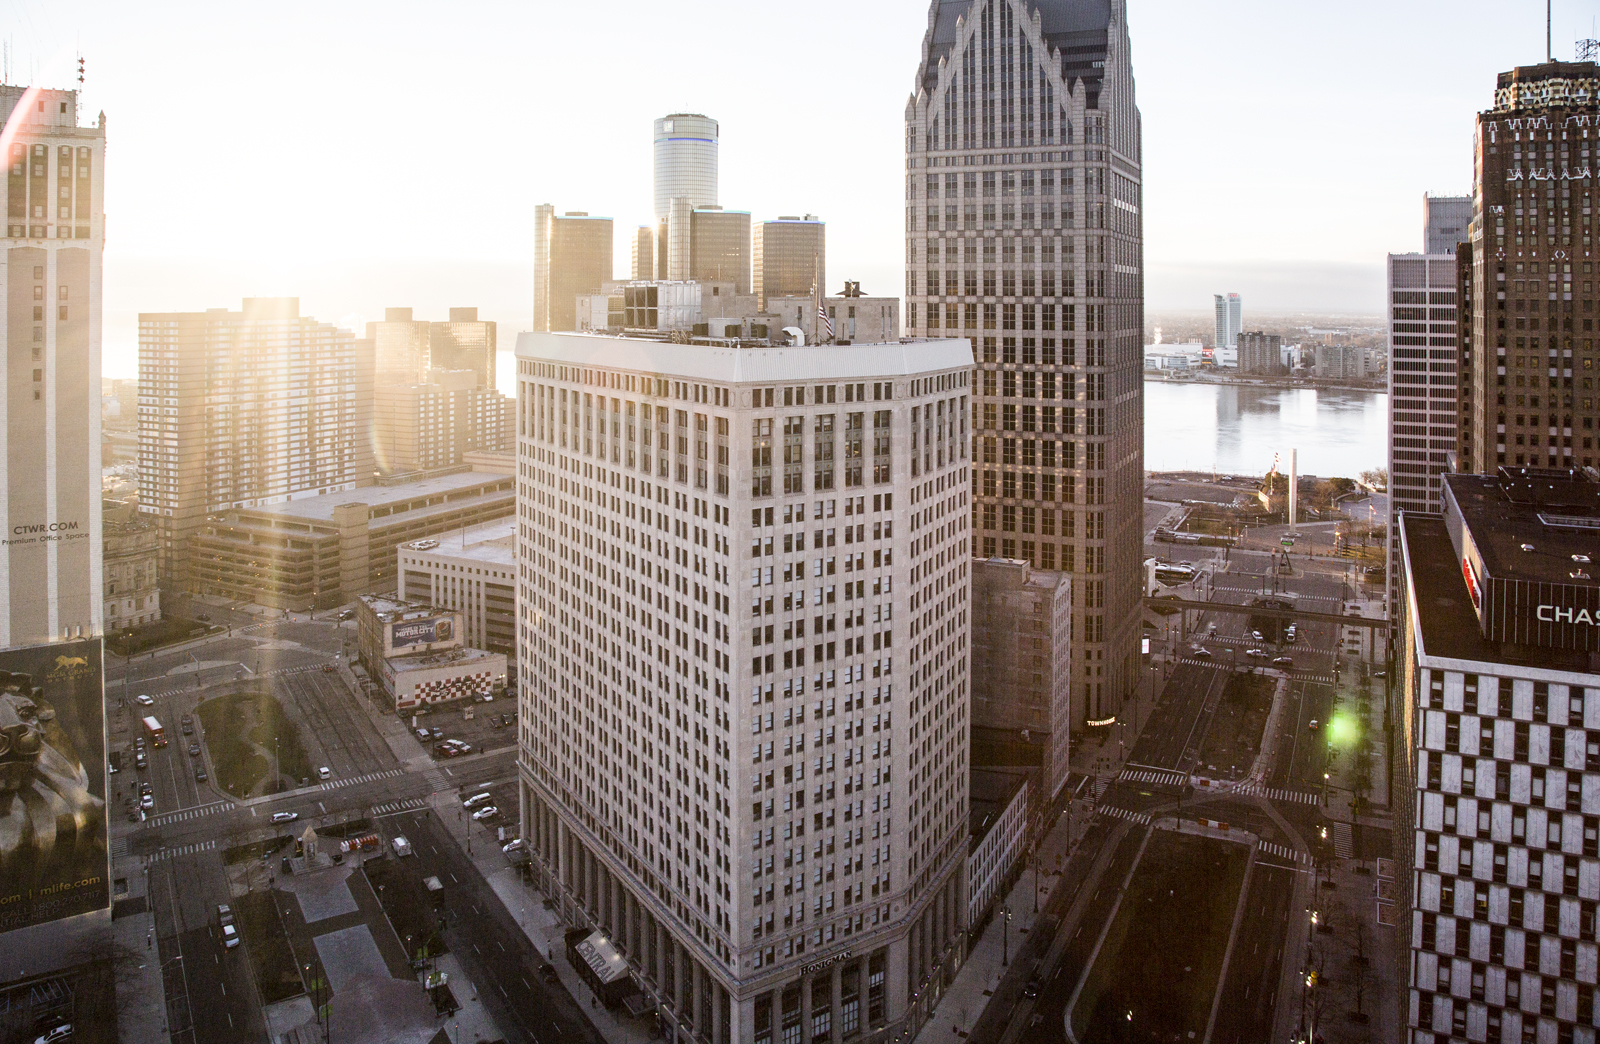 Downtown Detroit From The Rooftop Of 1001 Woodward During Sunrise. From Left To Right: The First National Building, Renaissance Center, One/Ally Detroit Center, Woodward Avenue, The Detroit River, Hart Plaza, One Woodward, The Guardian, And The Chase/Qube Building.